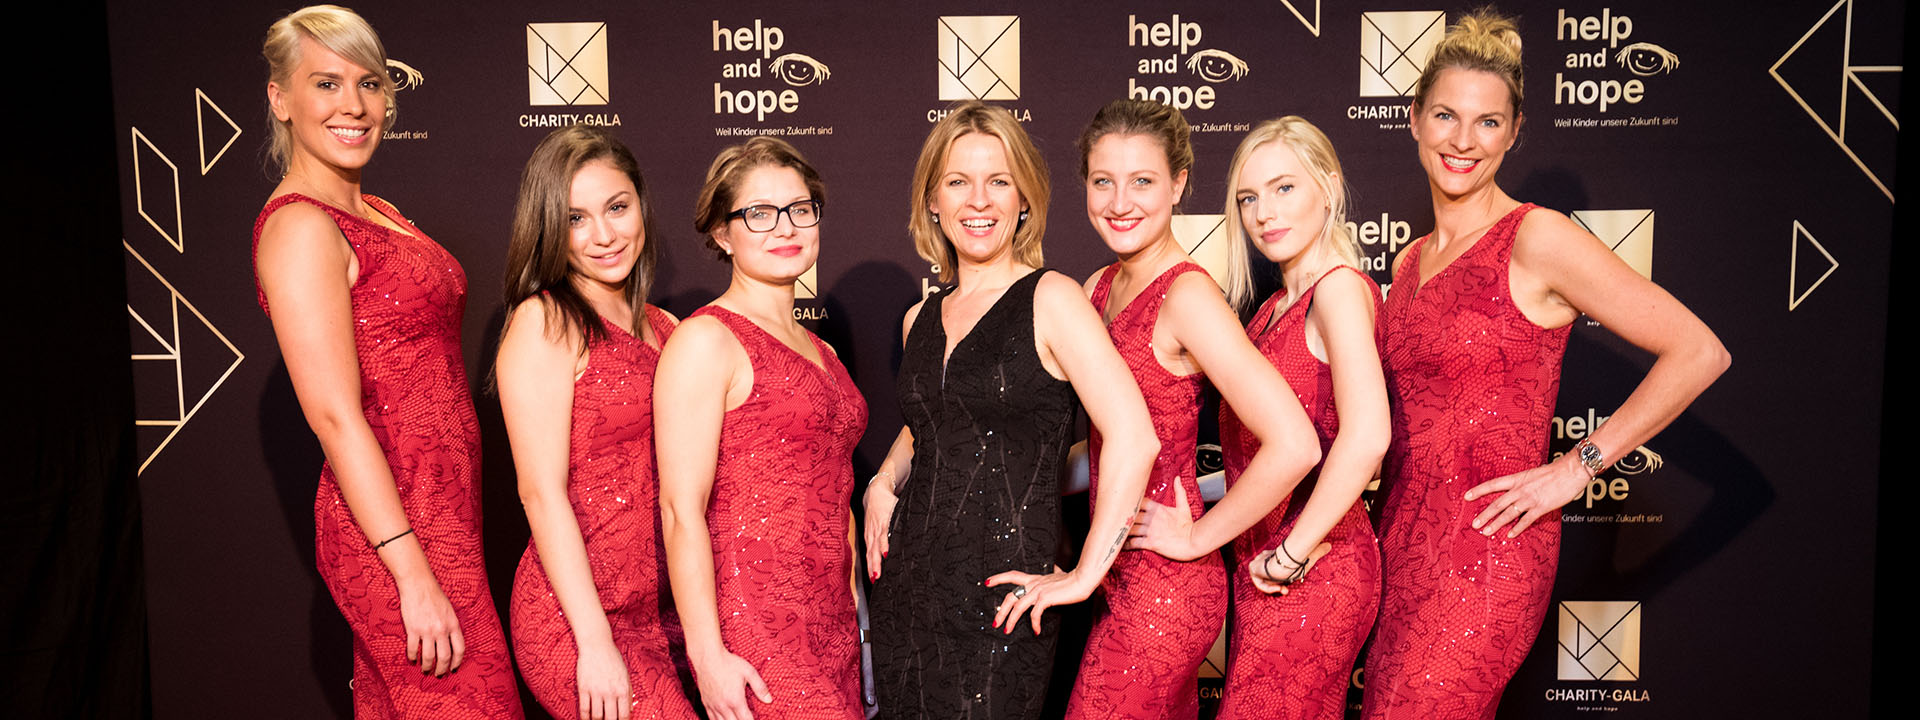 Help And Hope, Charity Gala, Dortmund, 04.11.2017, pictures taken by Stephan Pick